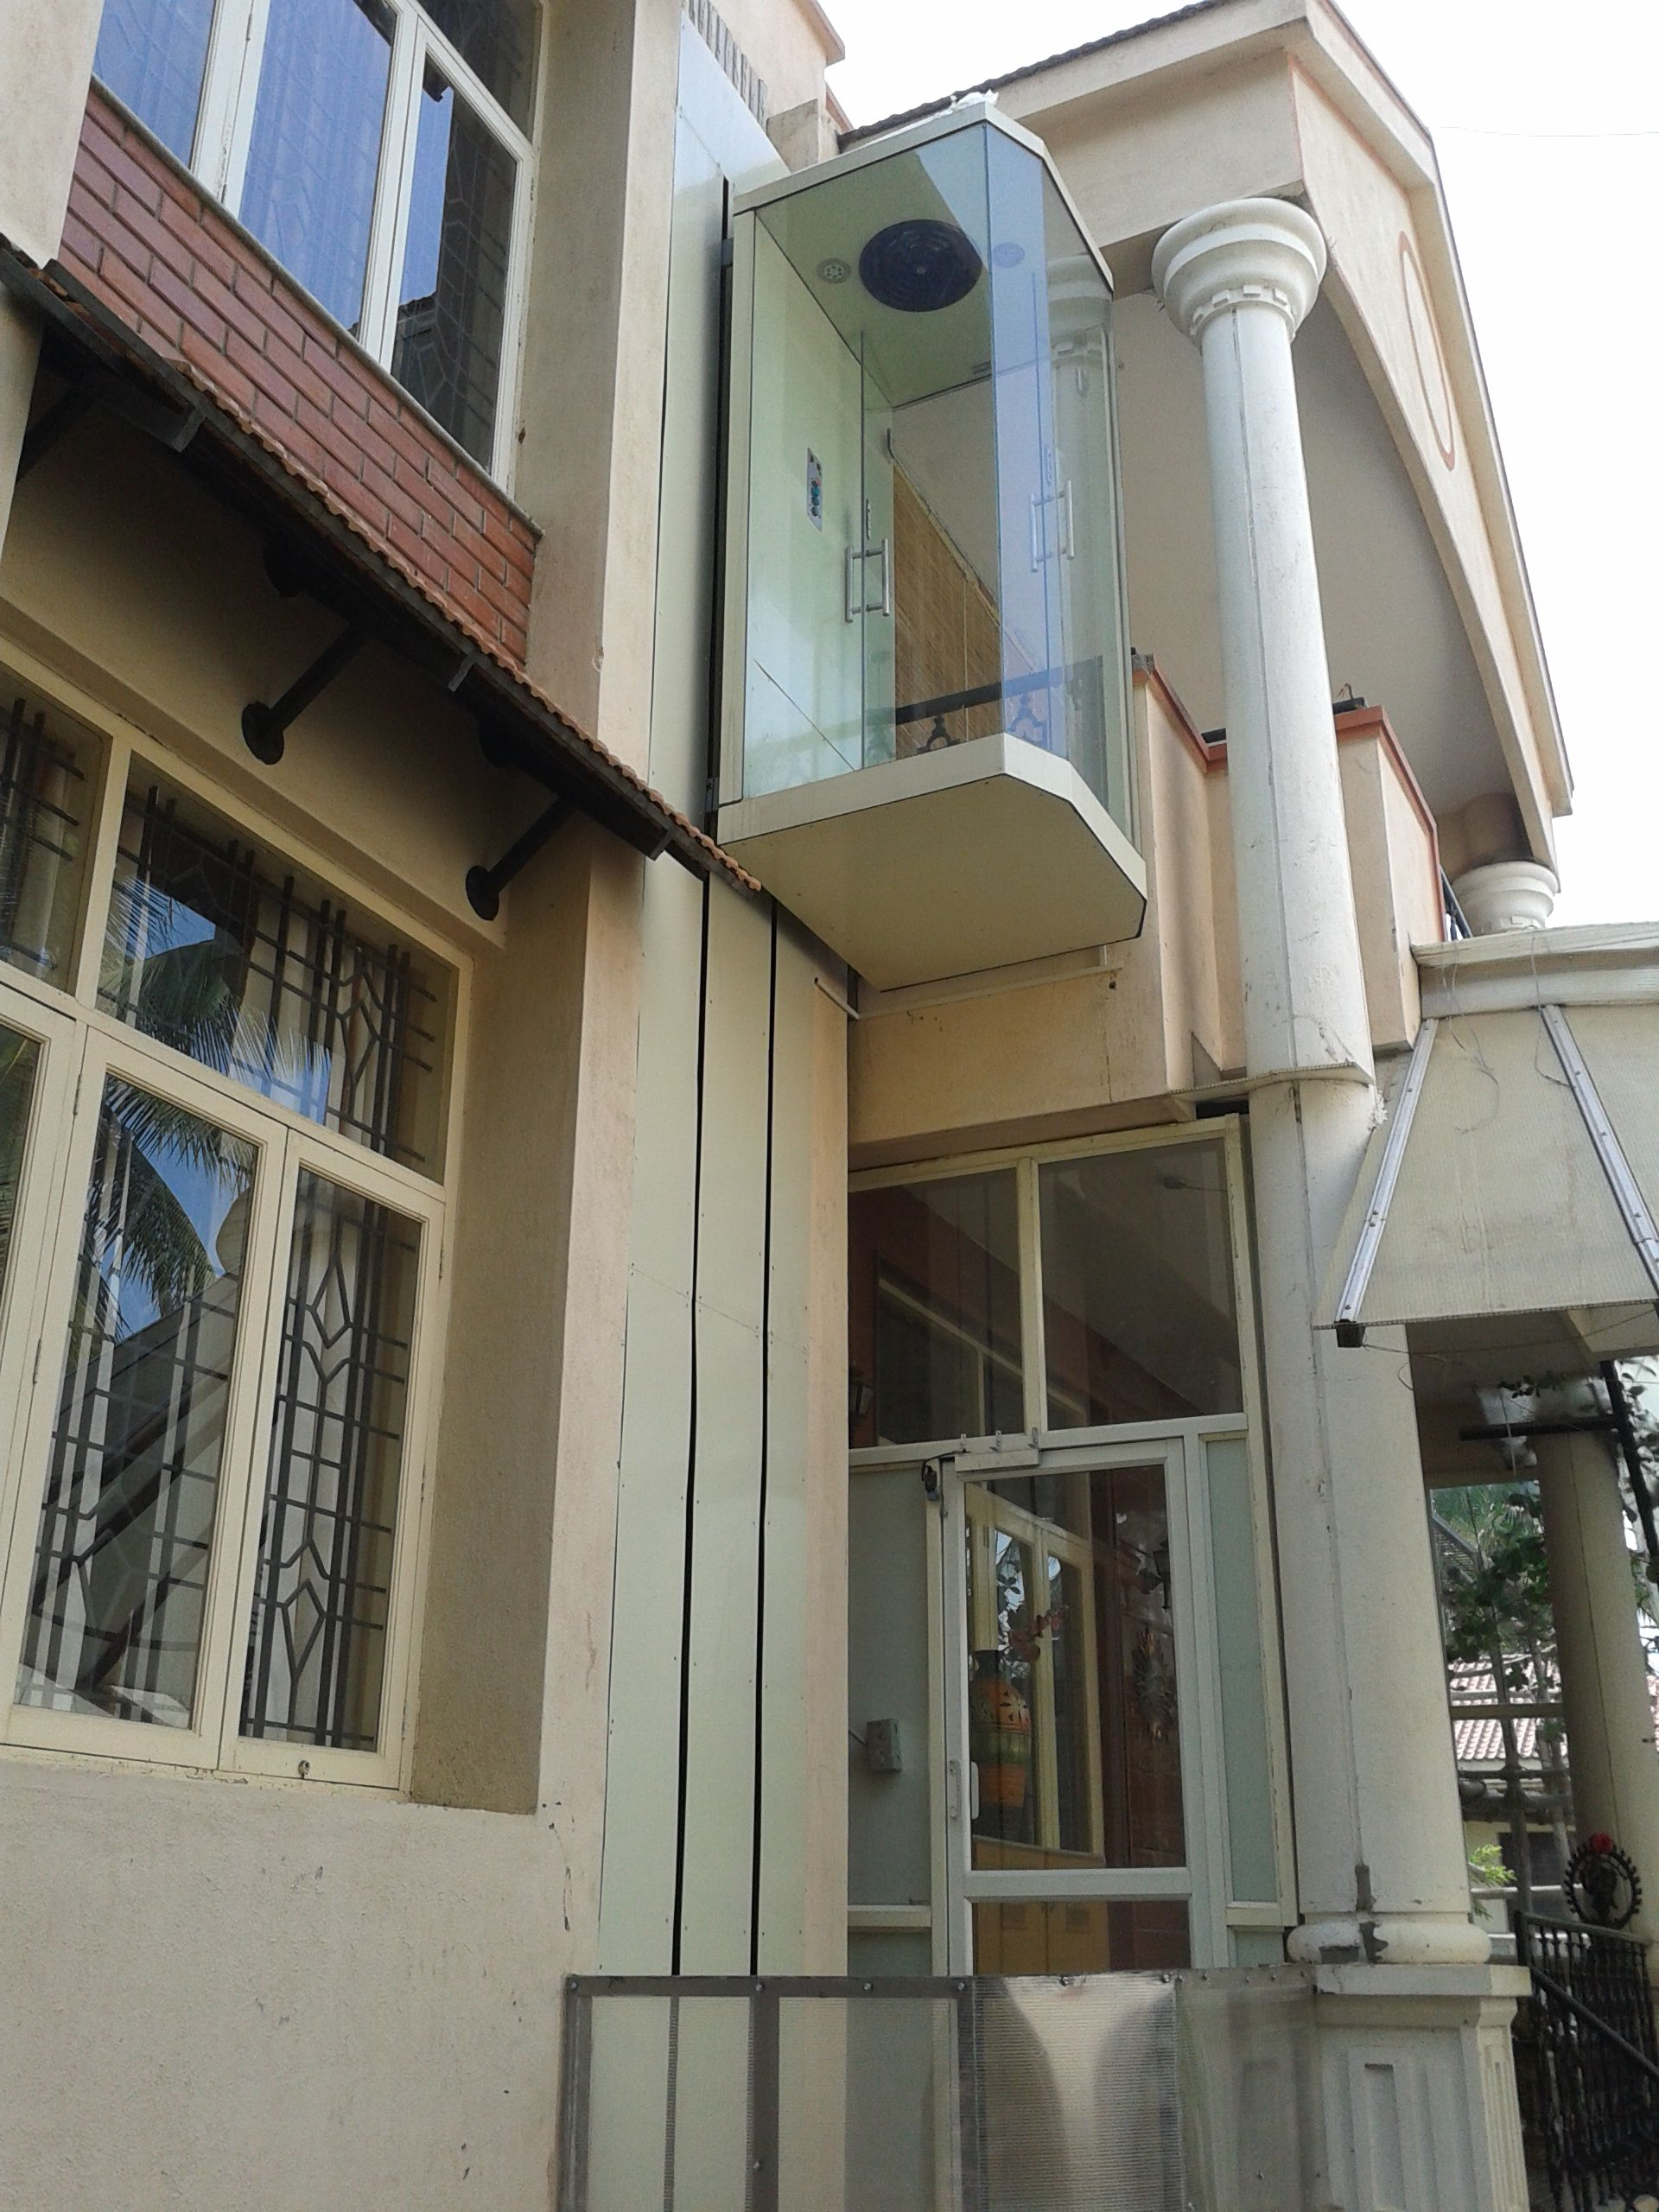 Mobility Aids provides best residential elevators in Chennai. Beach Butler Cargo Lifts Melton Install   3 Story House post Sandy